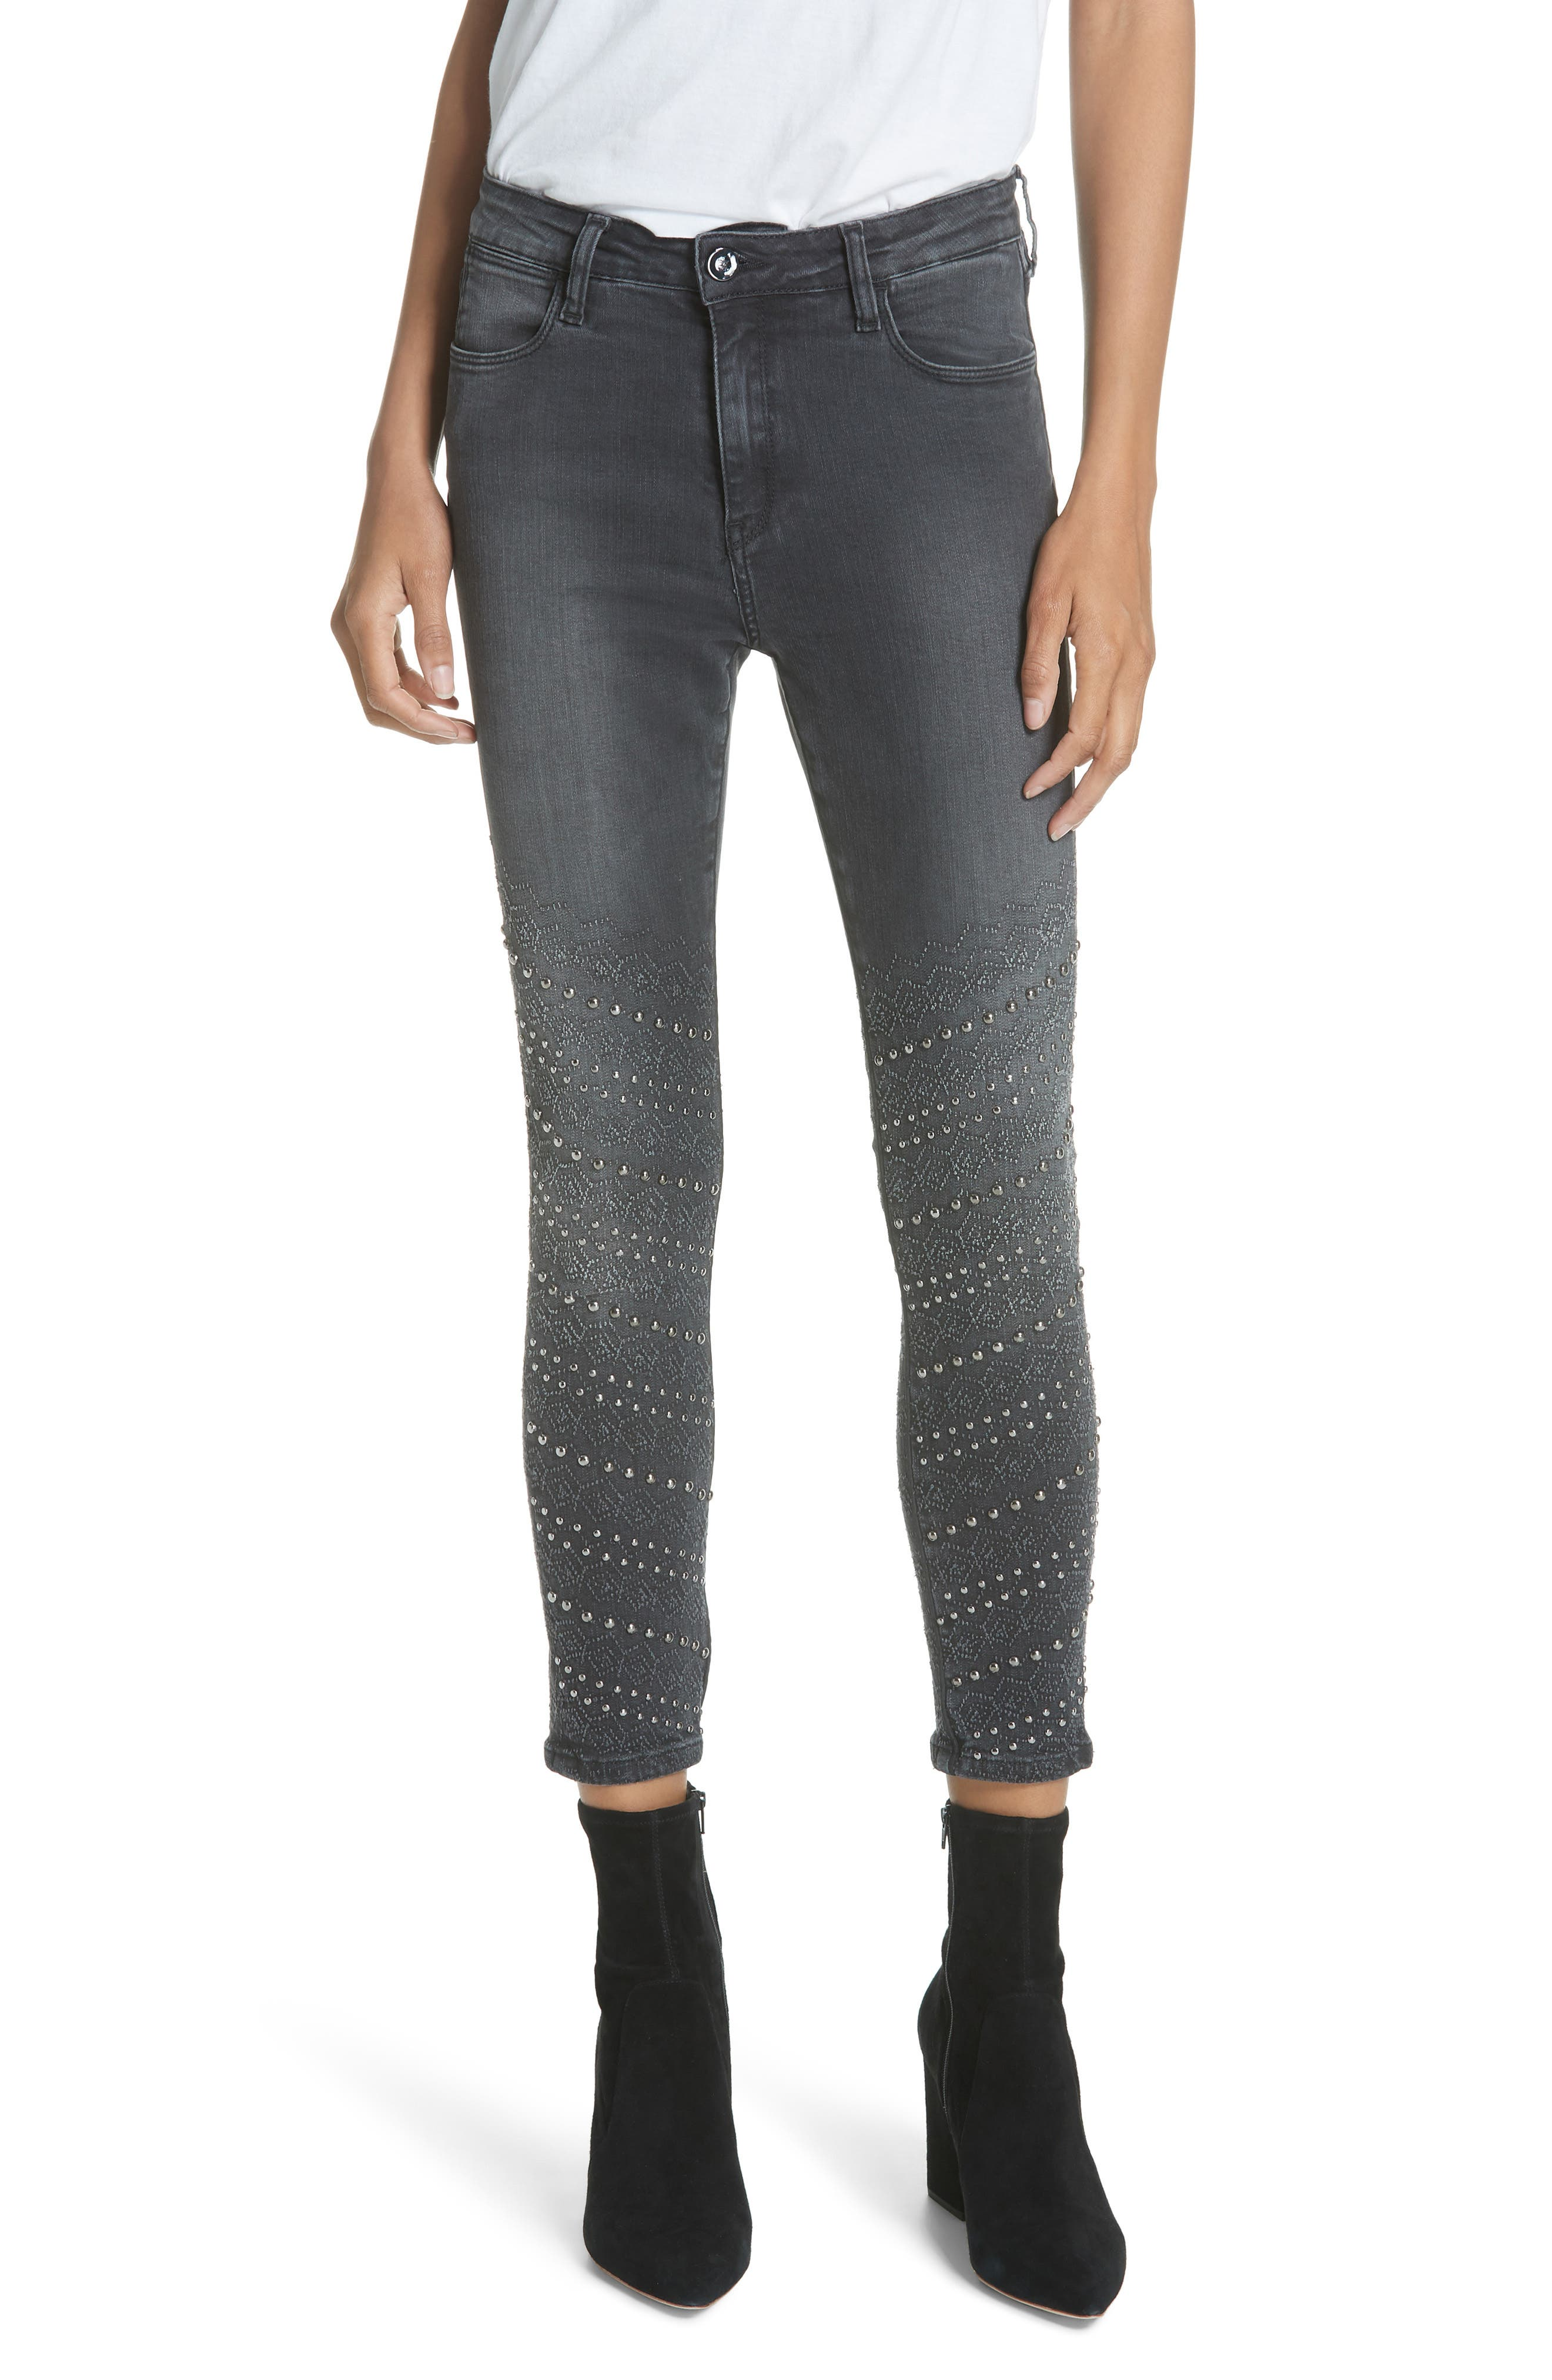 BROCKENBOW Andy Reina Embellished Skinny Jeans in Black Used